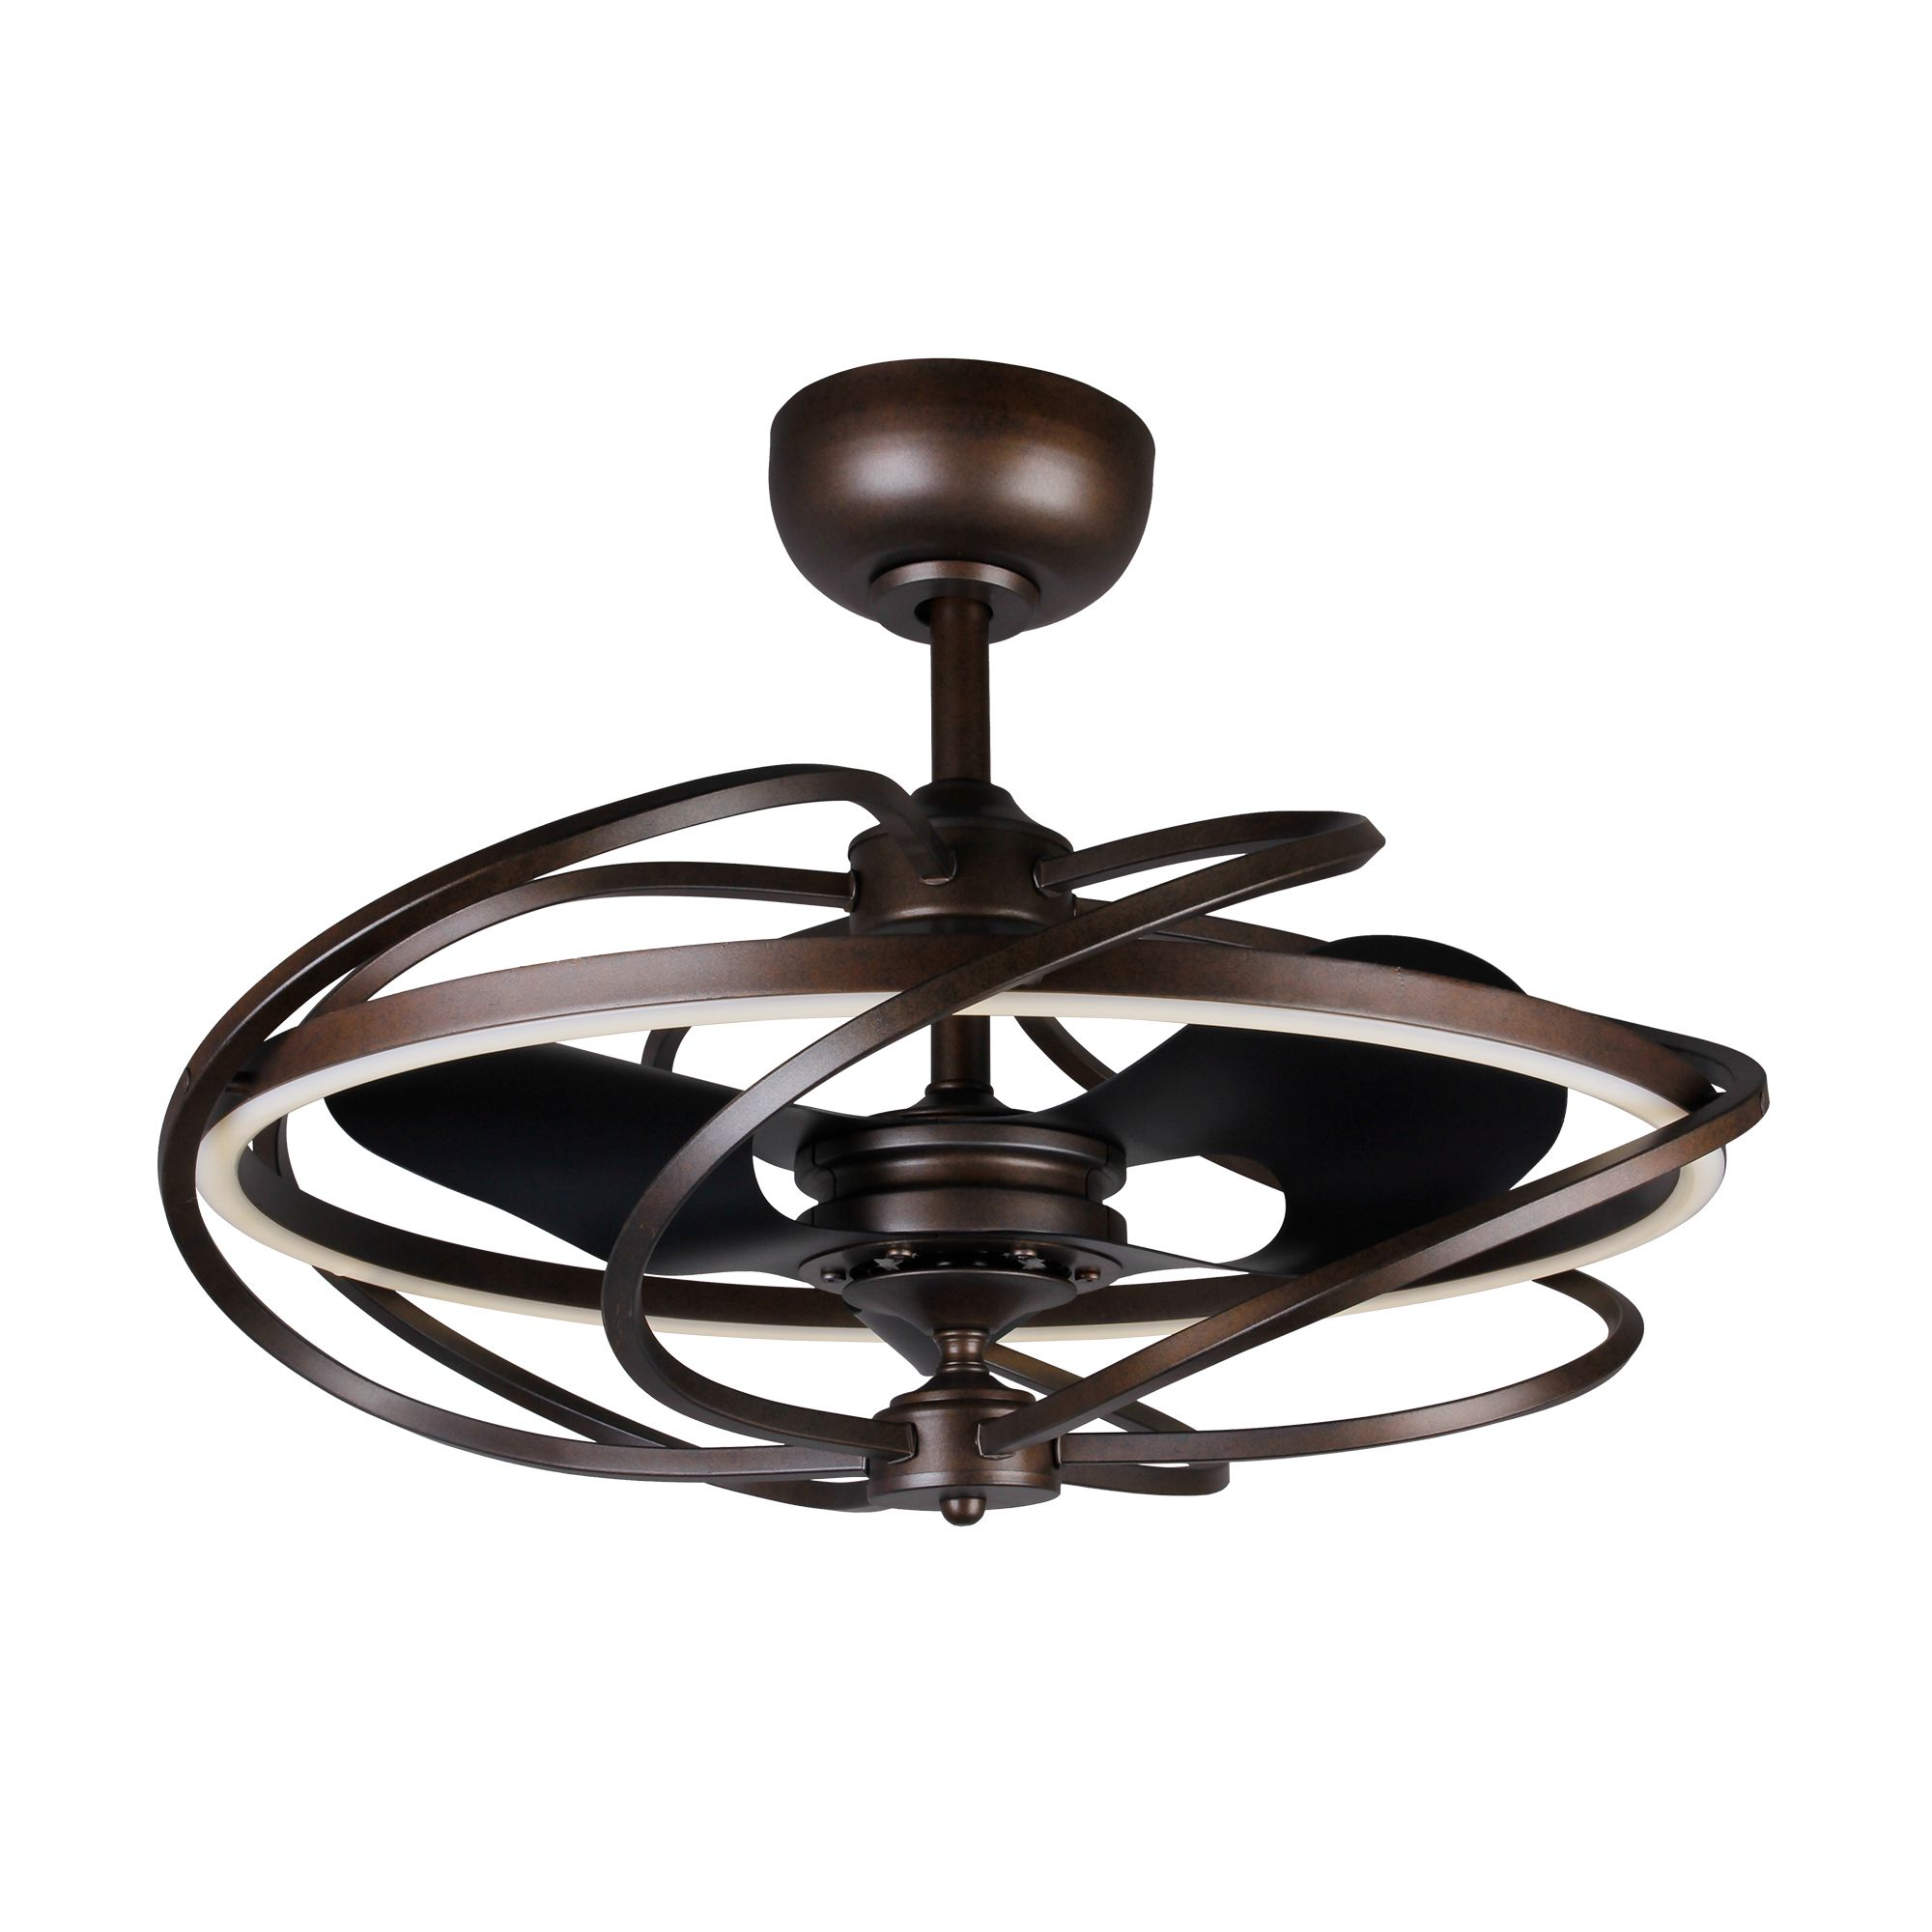 """27"""" LED Ceiling Fan with Remote Control, Black"""